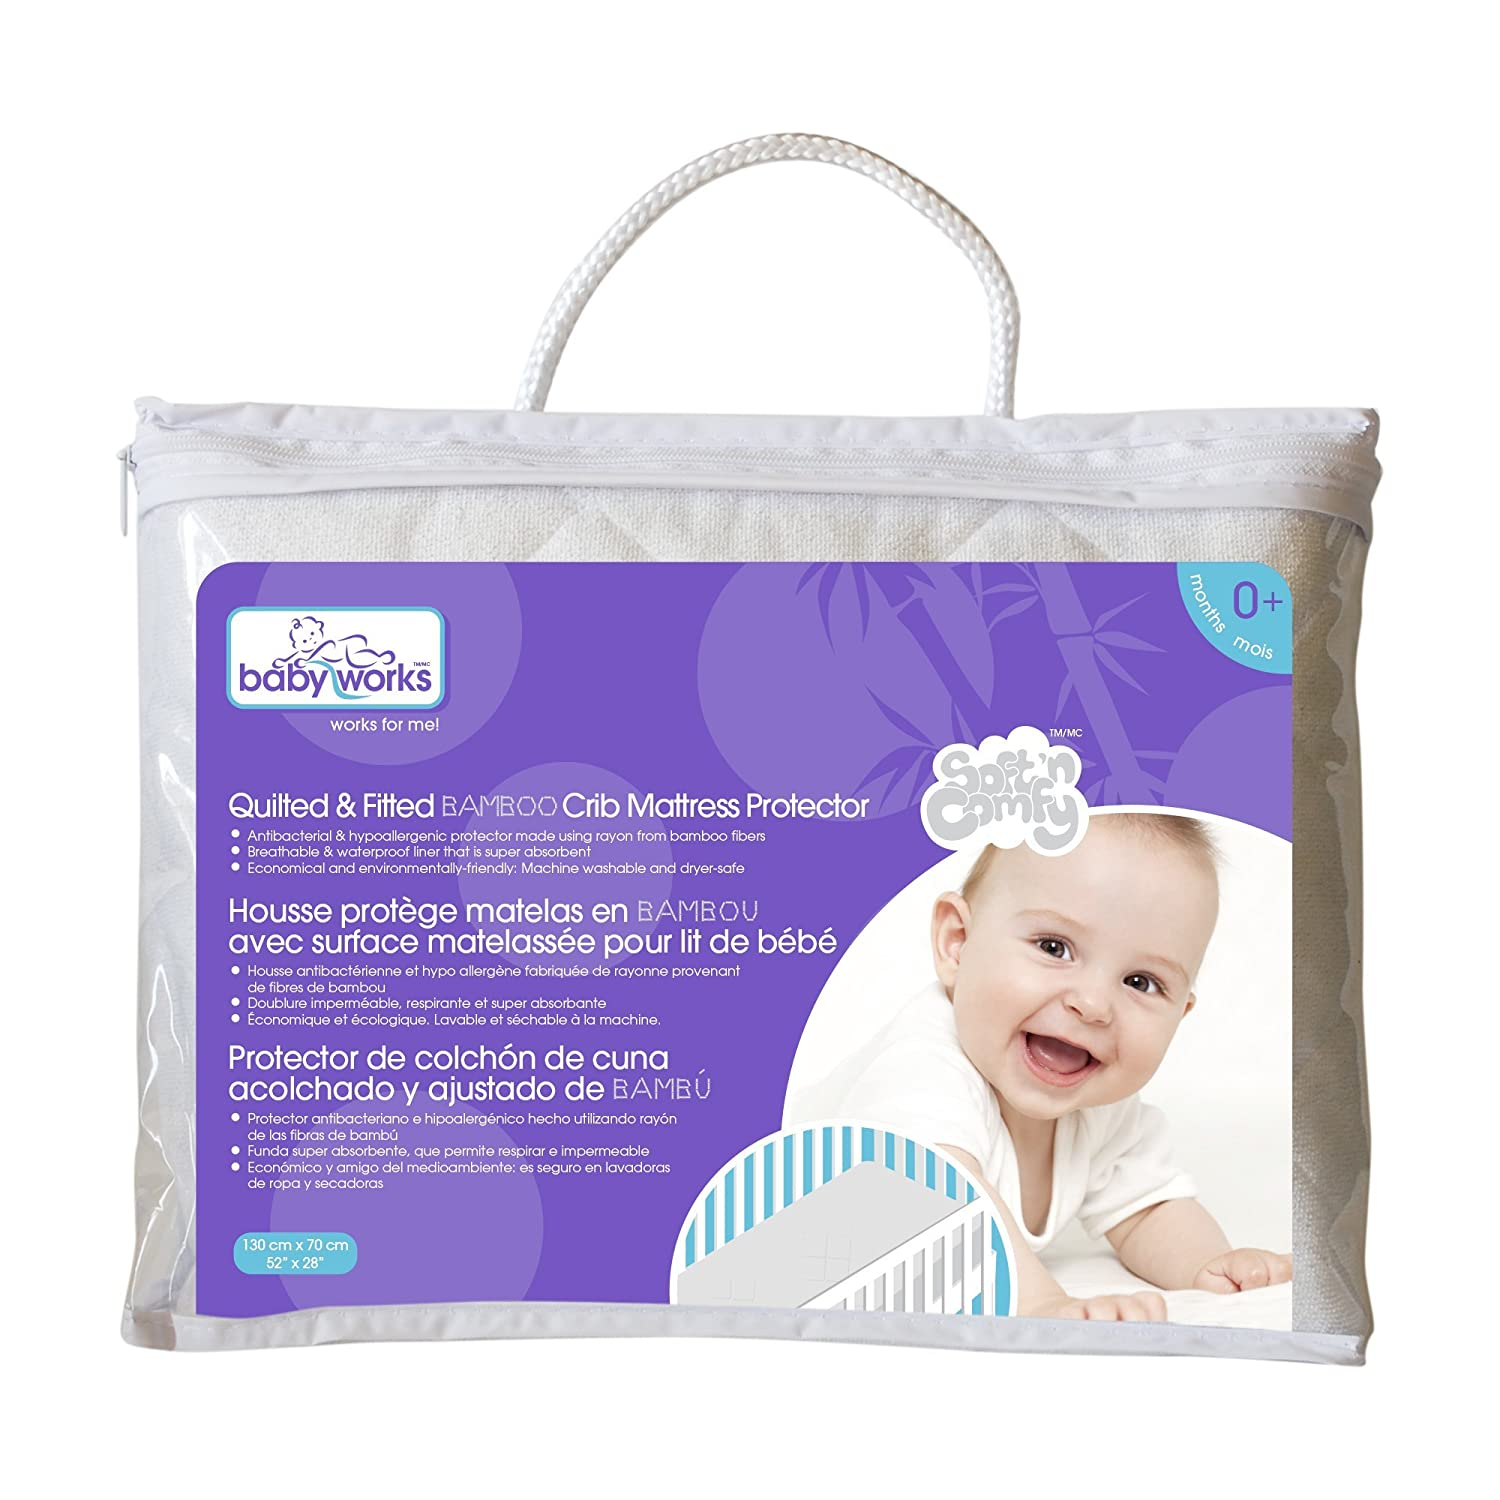 Amazon.: Quilted and Fitted Bamboo Crib Mattress Protector